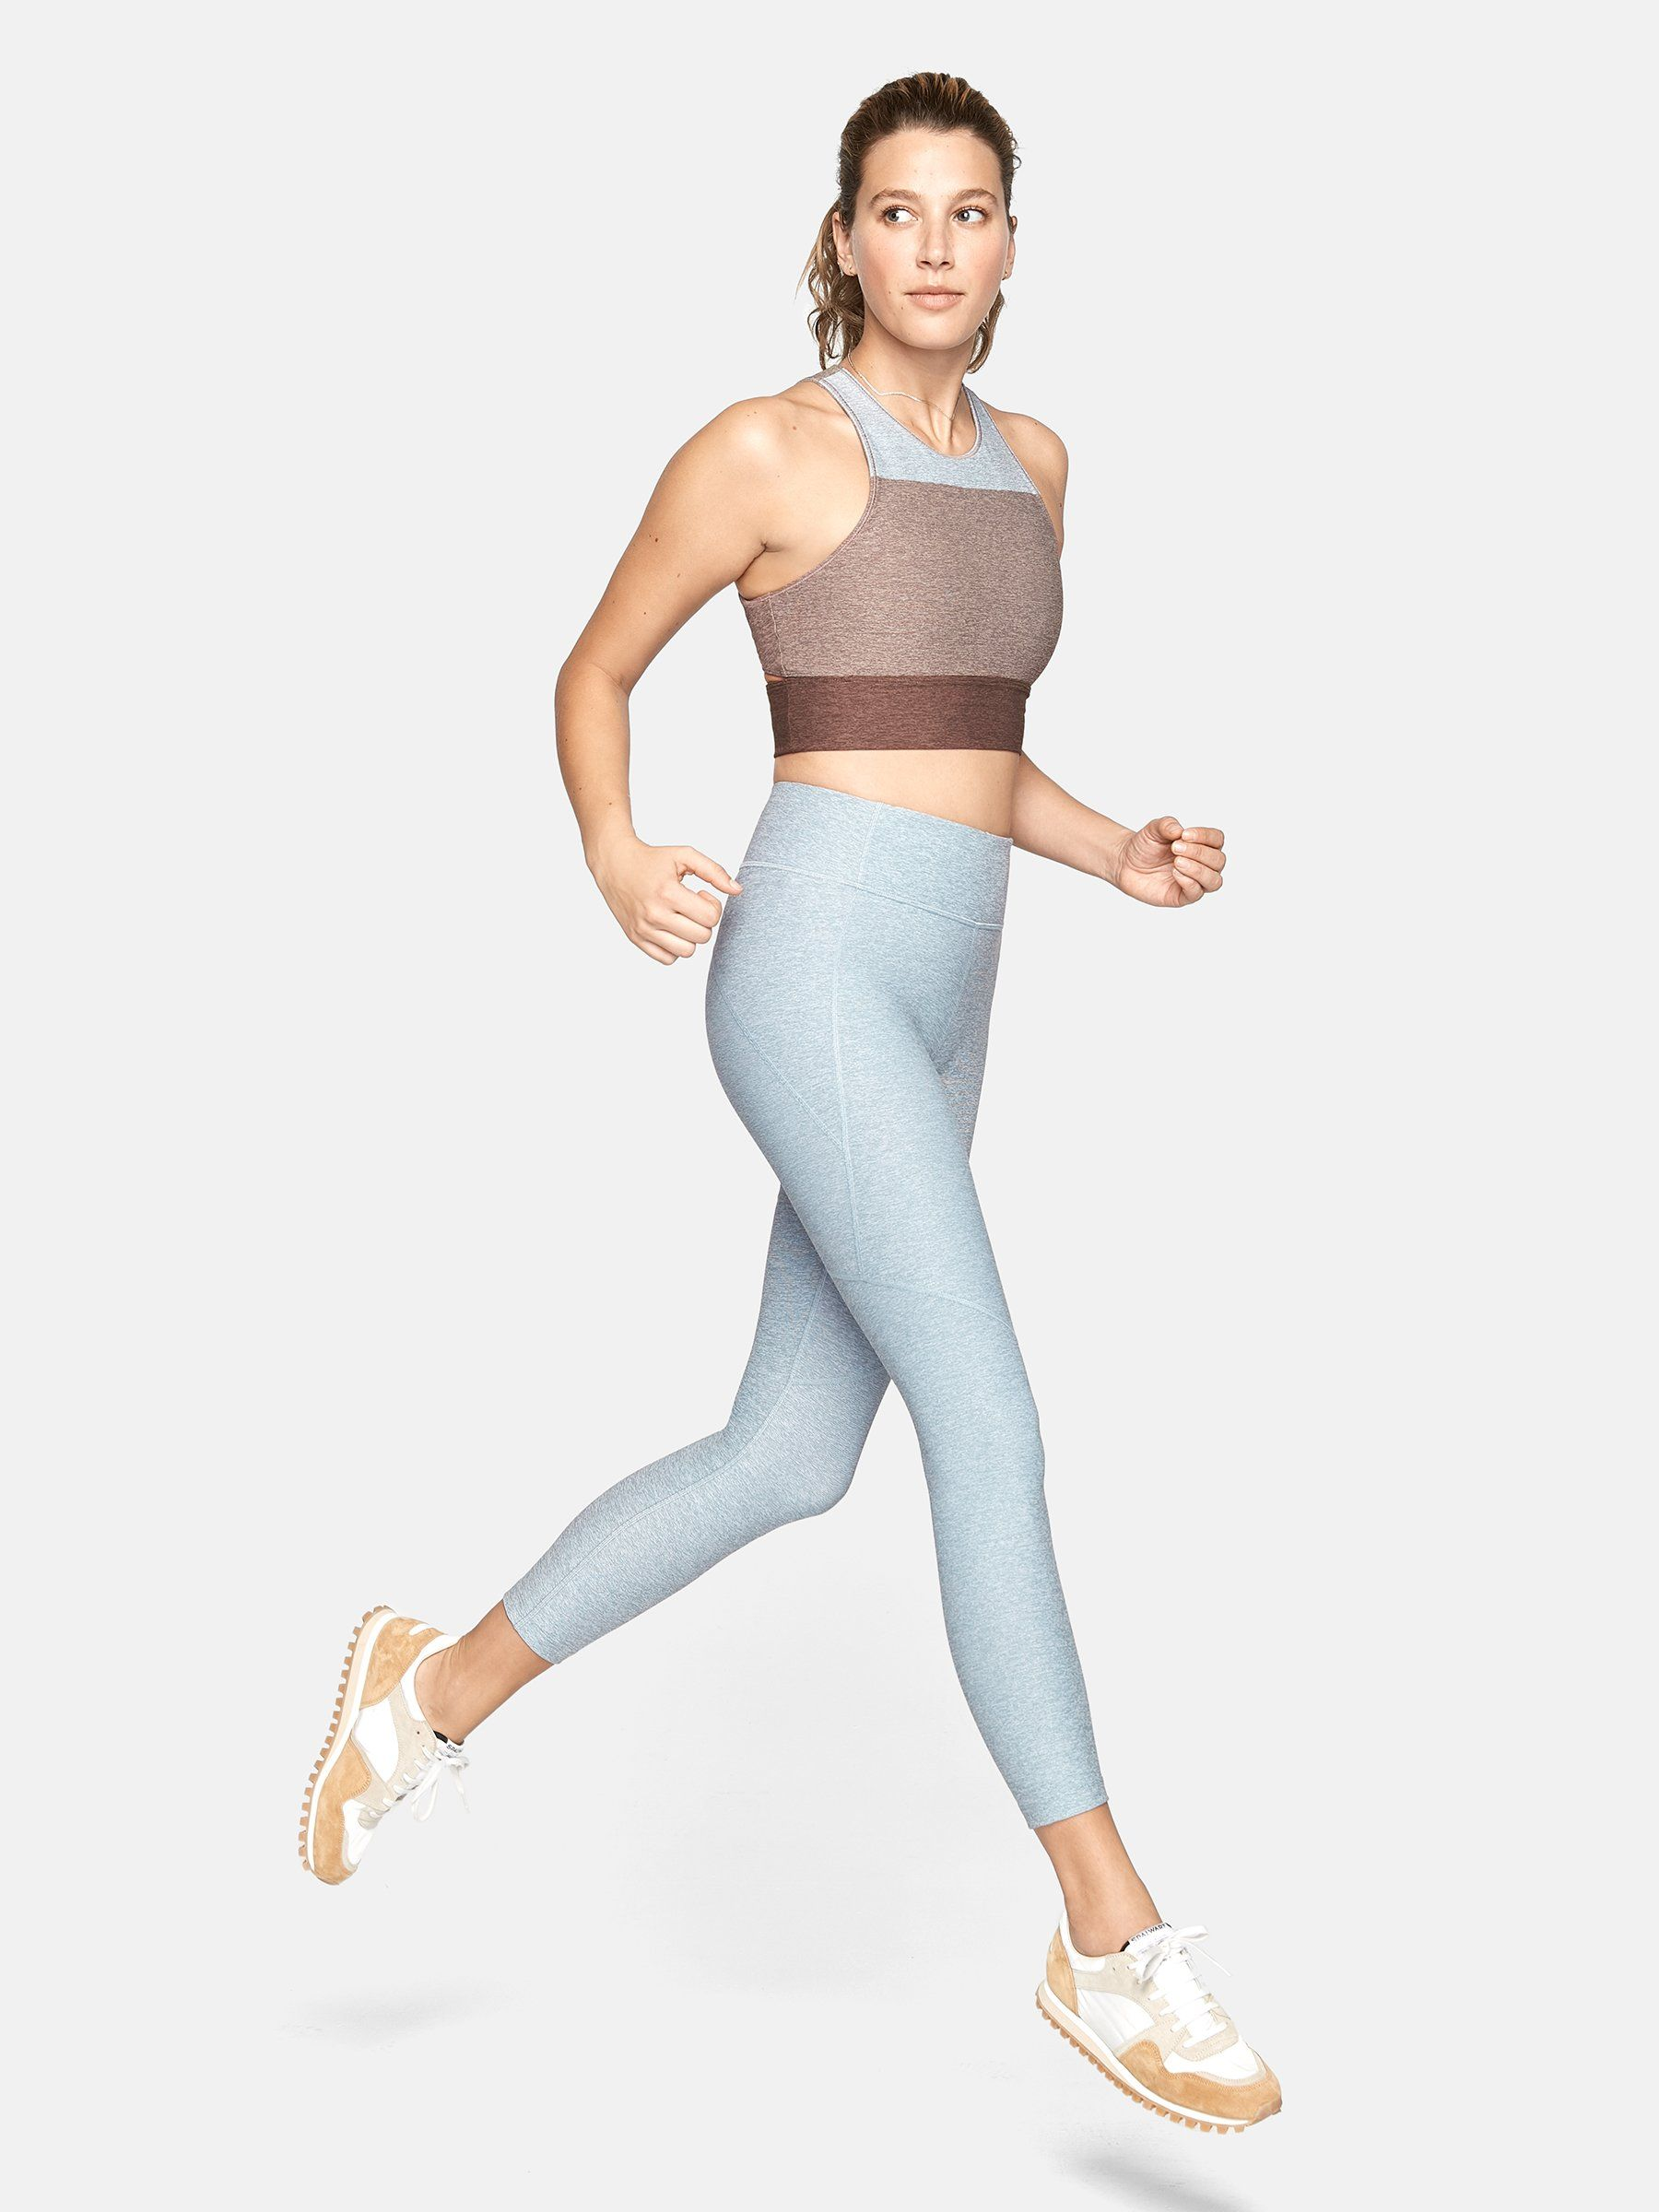 """3/4 Warmup Leggings Outdoor Voices outdoorvoices.com $75.00 SHOP NOW According to the brand, Outdoor Voices uses recycled polyester and used water bottles to create its breathable activewear, keeping """"OV in your gym bag and out of landfills."""""""